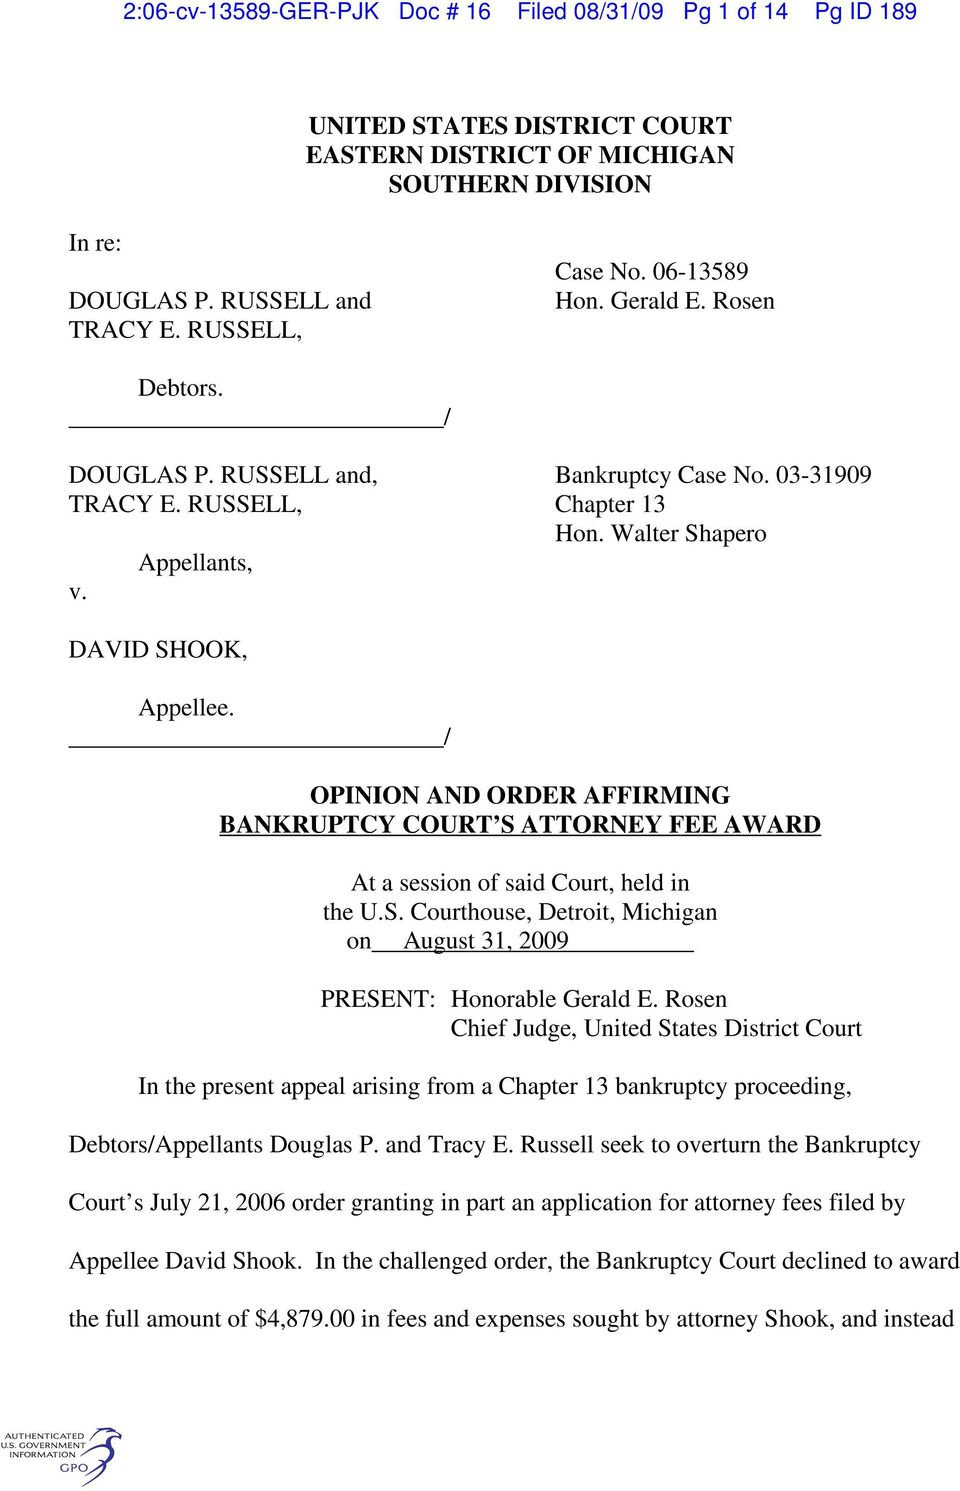 / OPINION AND ORDER AFFIRMING BANKRUPTCY COURT S ATTORNEY FEE AWARD At a session of said Court, held in the U.S. Courthouse, Detroit, Michigan on August 31, 2009 PRESENT: Honorable Gerald E.